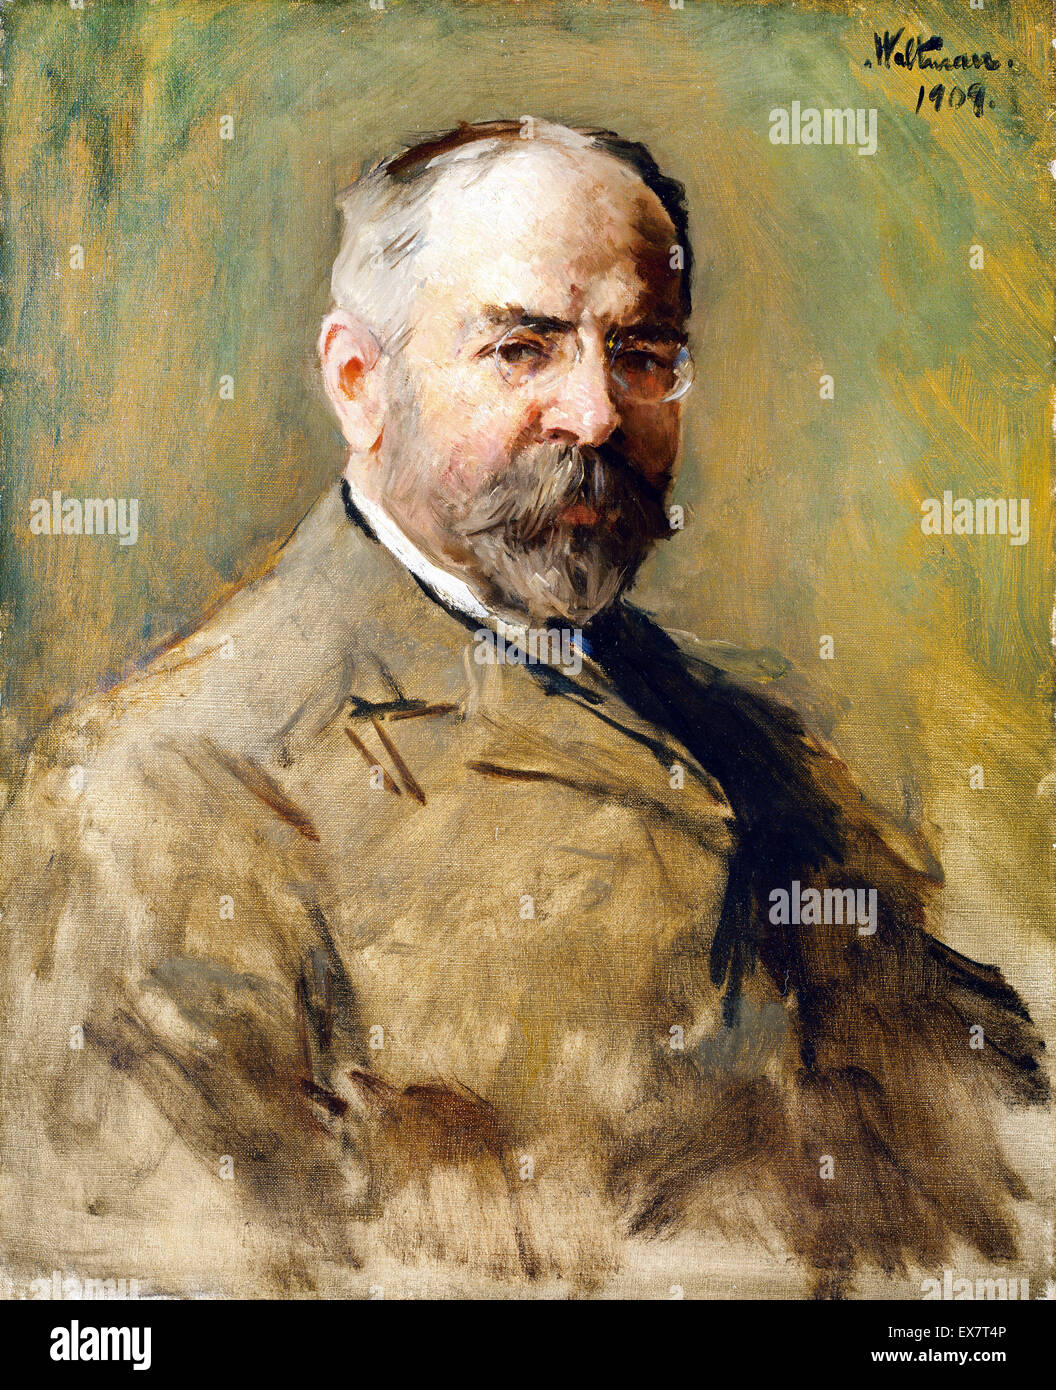 Harry Franklin Waltman, John Philip Sousa 1909 Oil on canvas. National Portrait Gallery, Washington, D.C., USA. - Stock Image